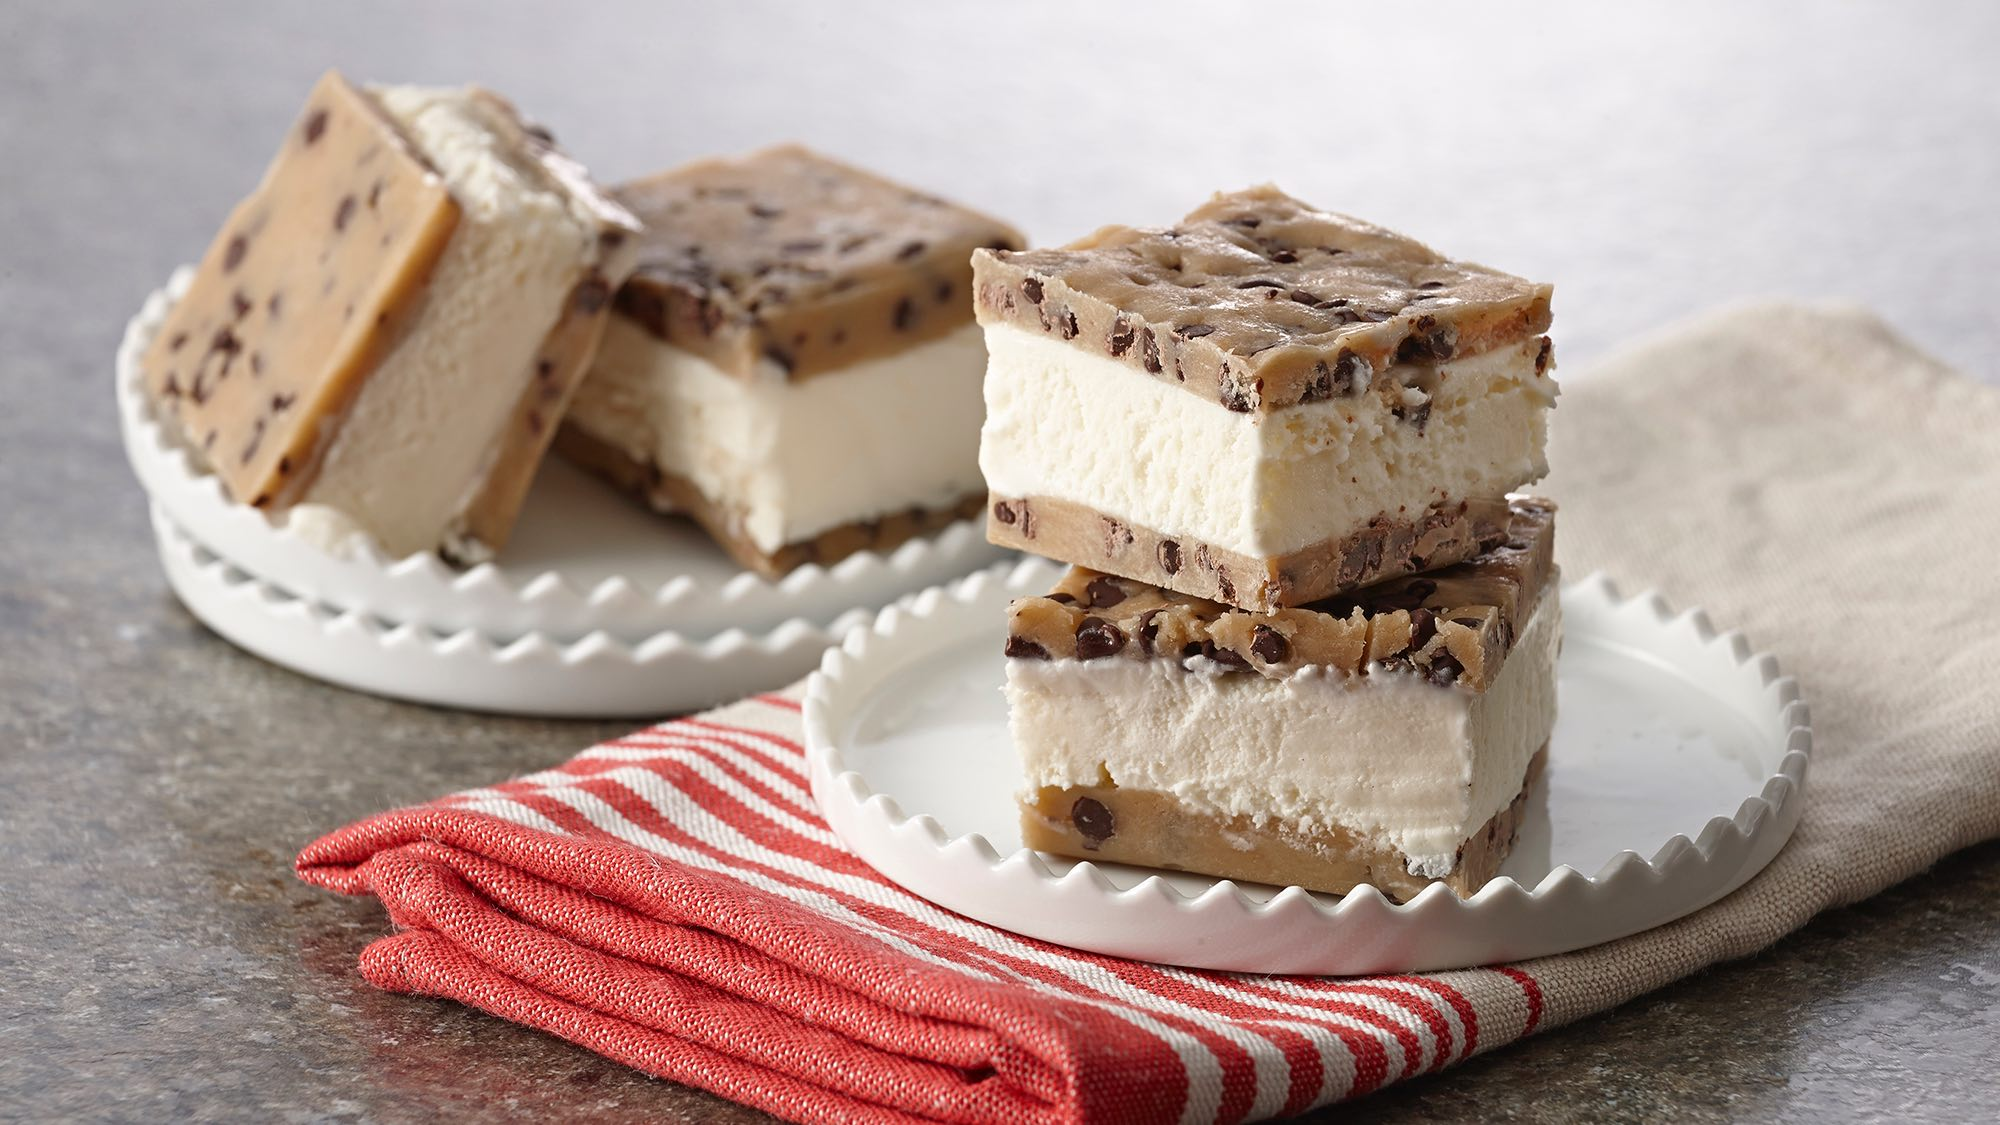 McCormick No Bake Cookie Dough Ice Cream Sandwich